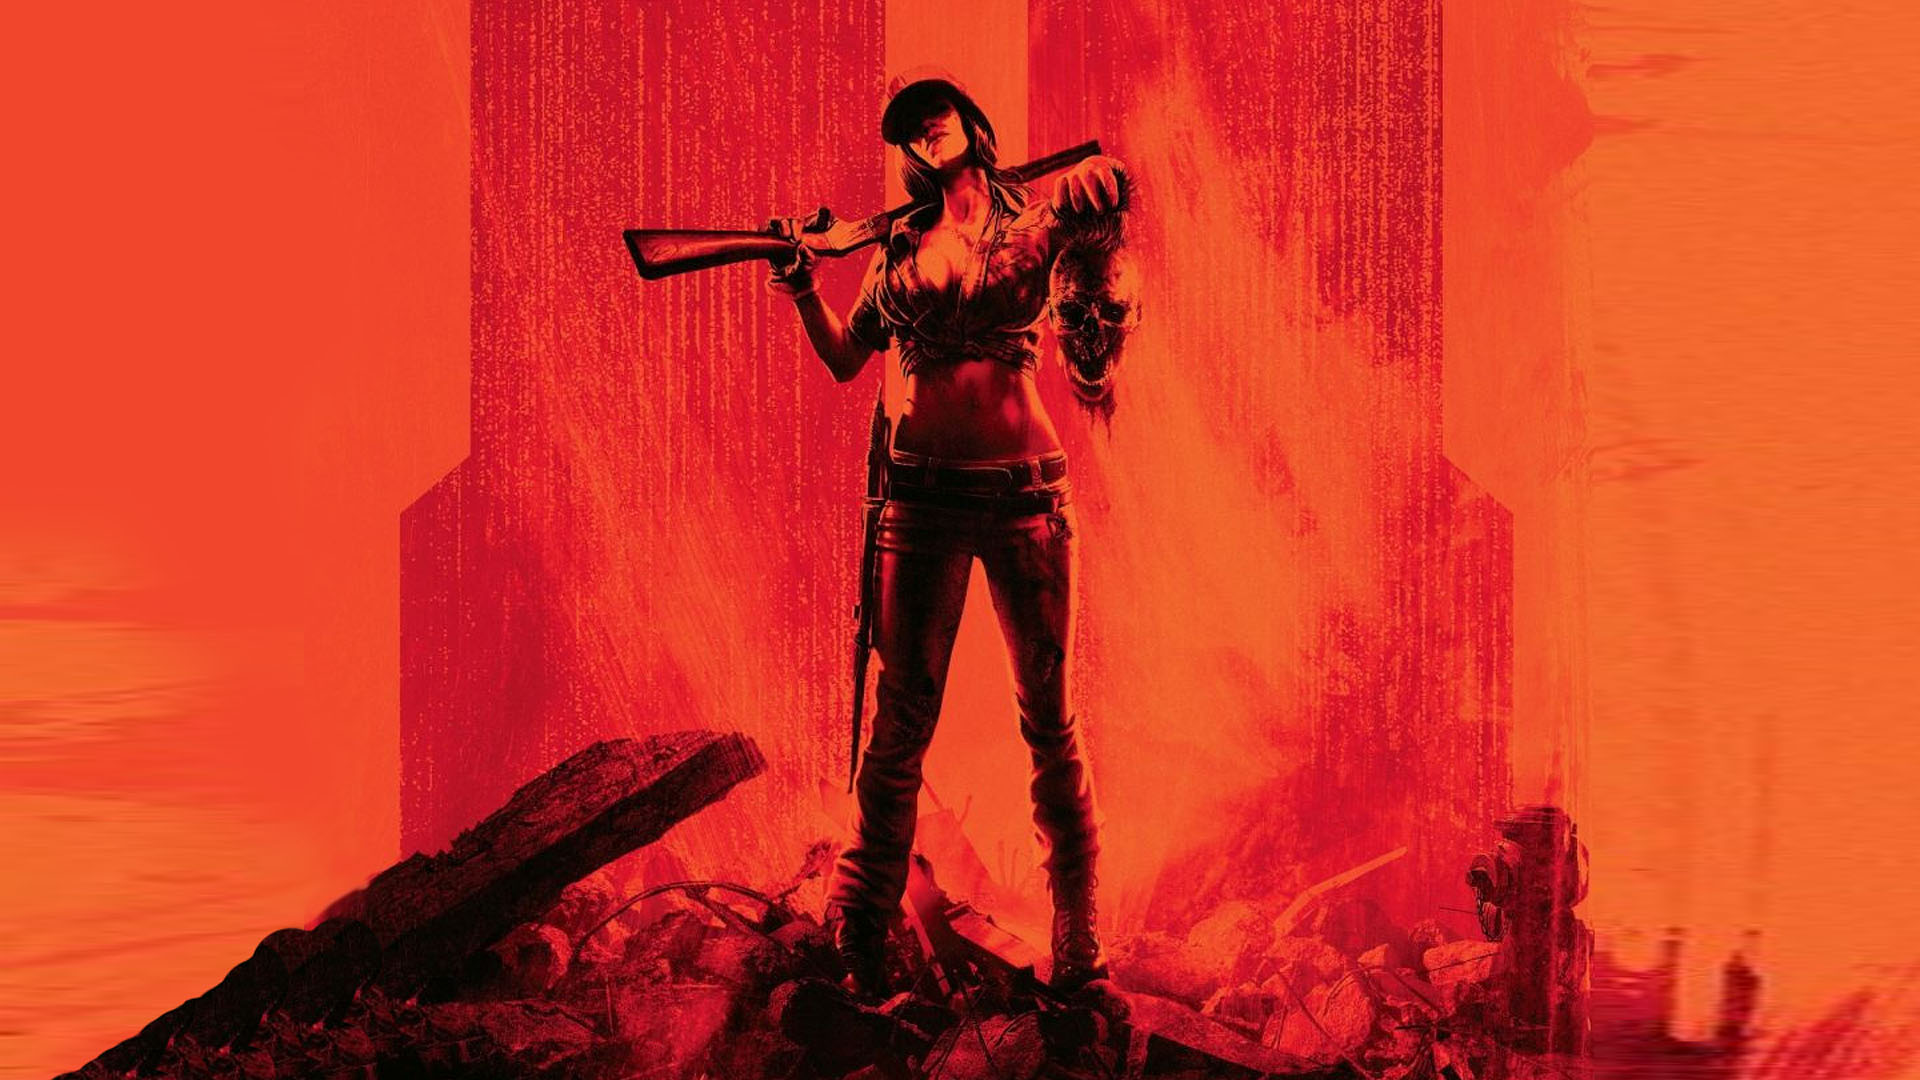 COD Black Ops 2 Zombies Wallpapers | HD Wallpapers